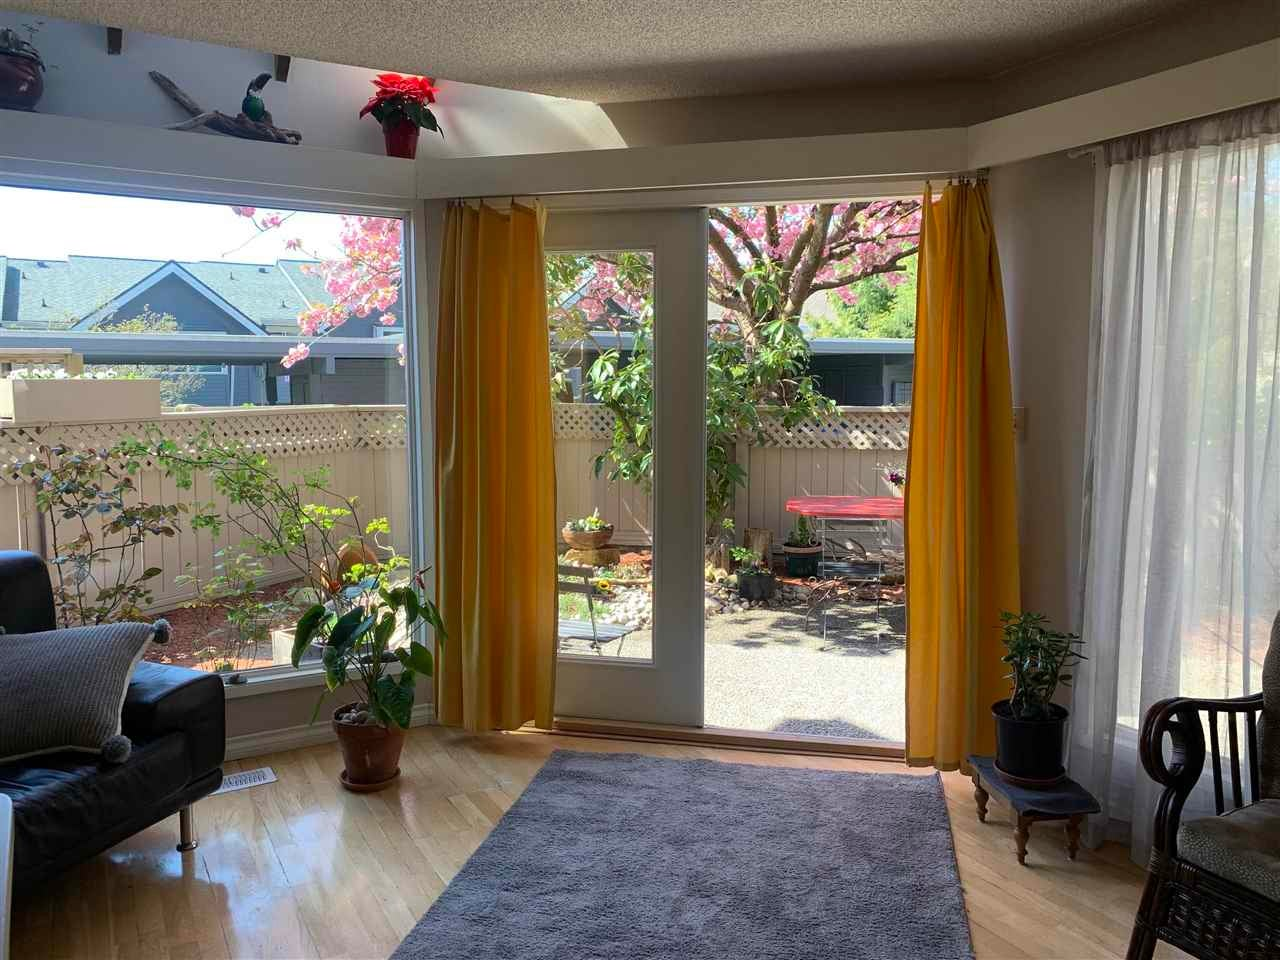 2 230 W 15TH STREET - Central Lonsdale Townhouse for sale, 3 Bedrooms (R2572749) - #11